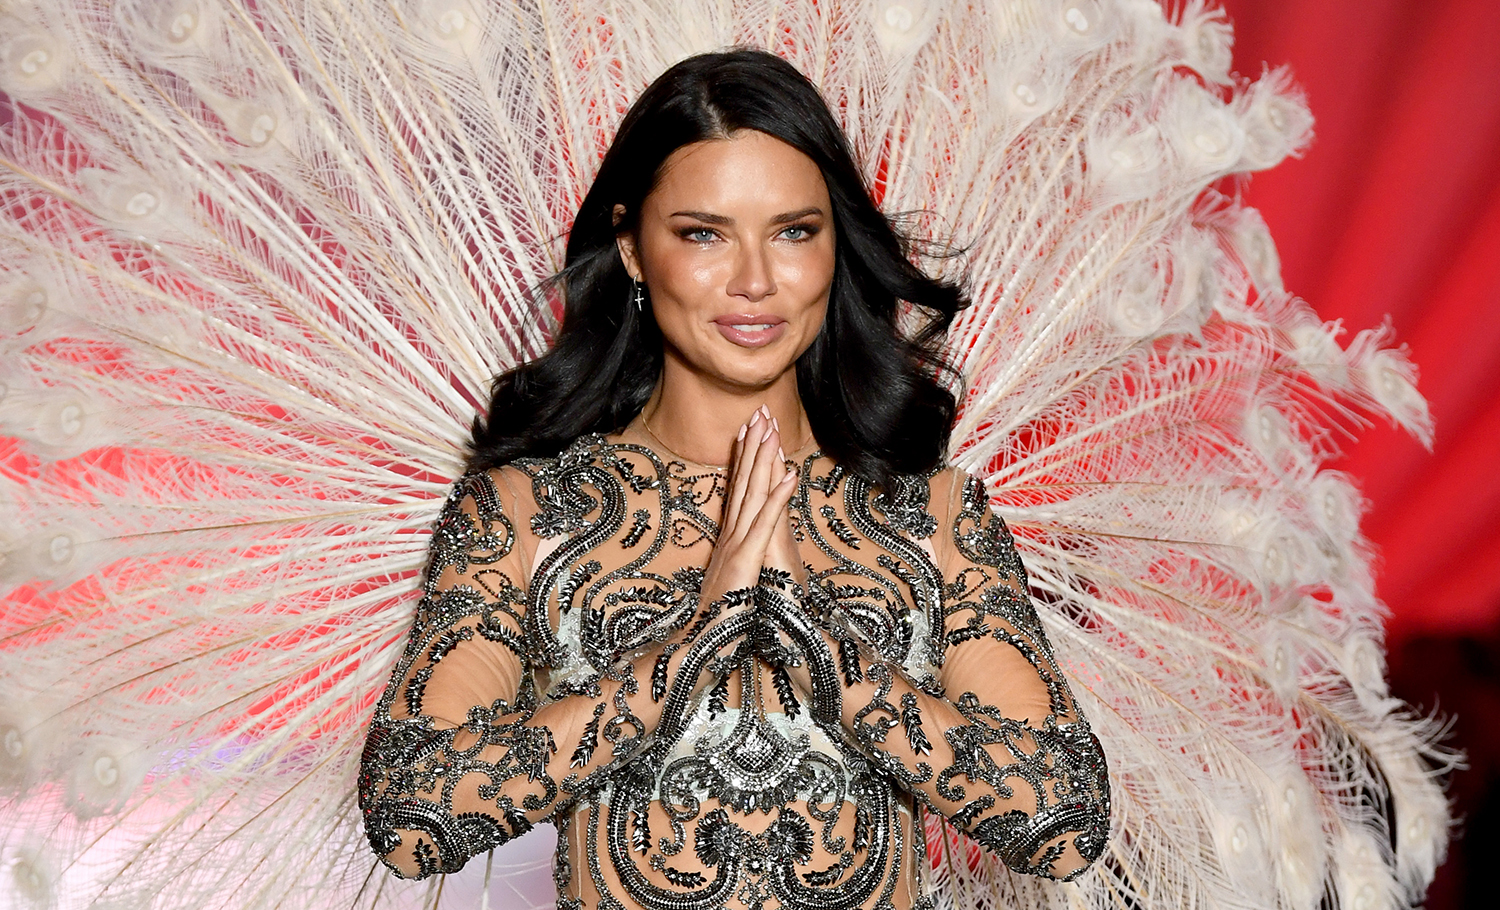 Getting their wings: Aussies debut at Victoria's Secret show